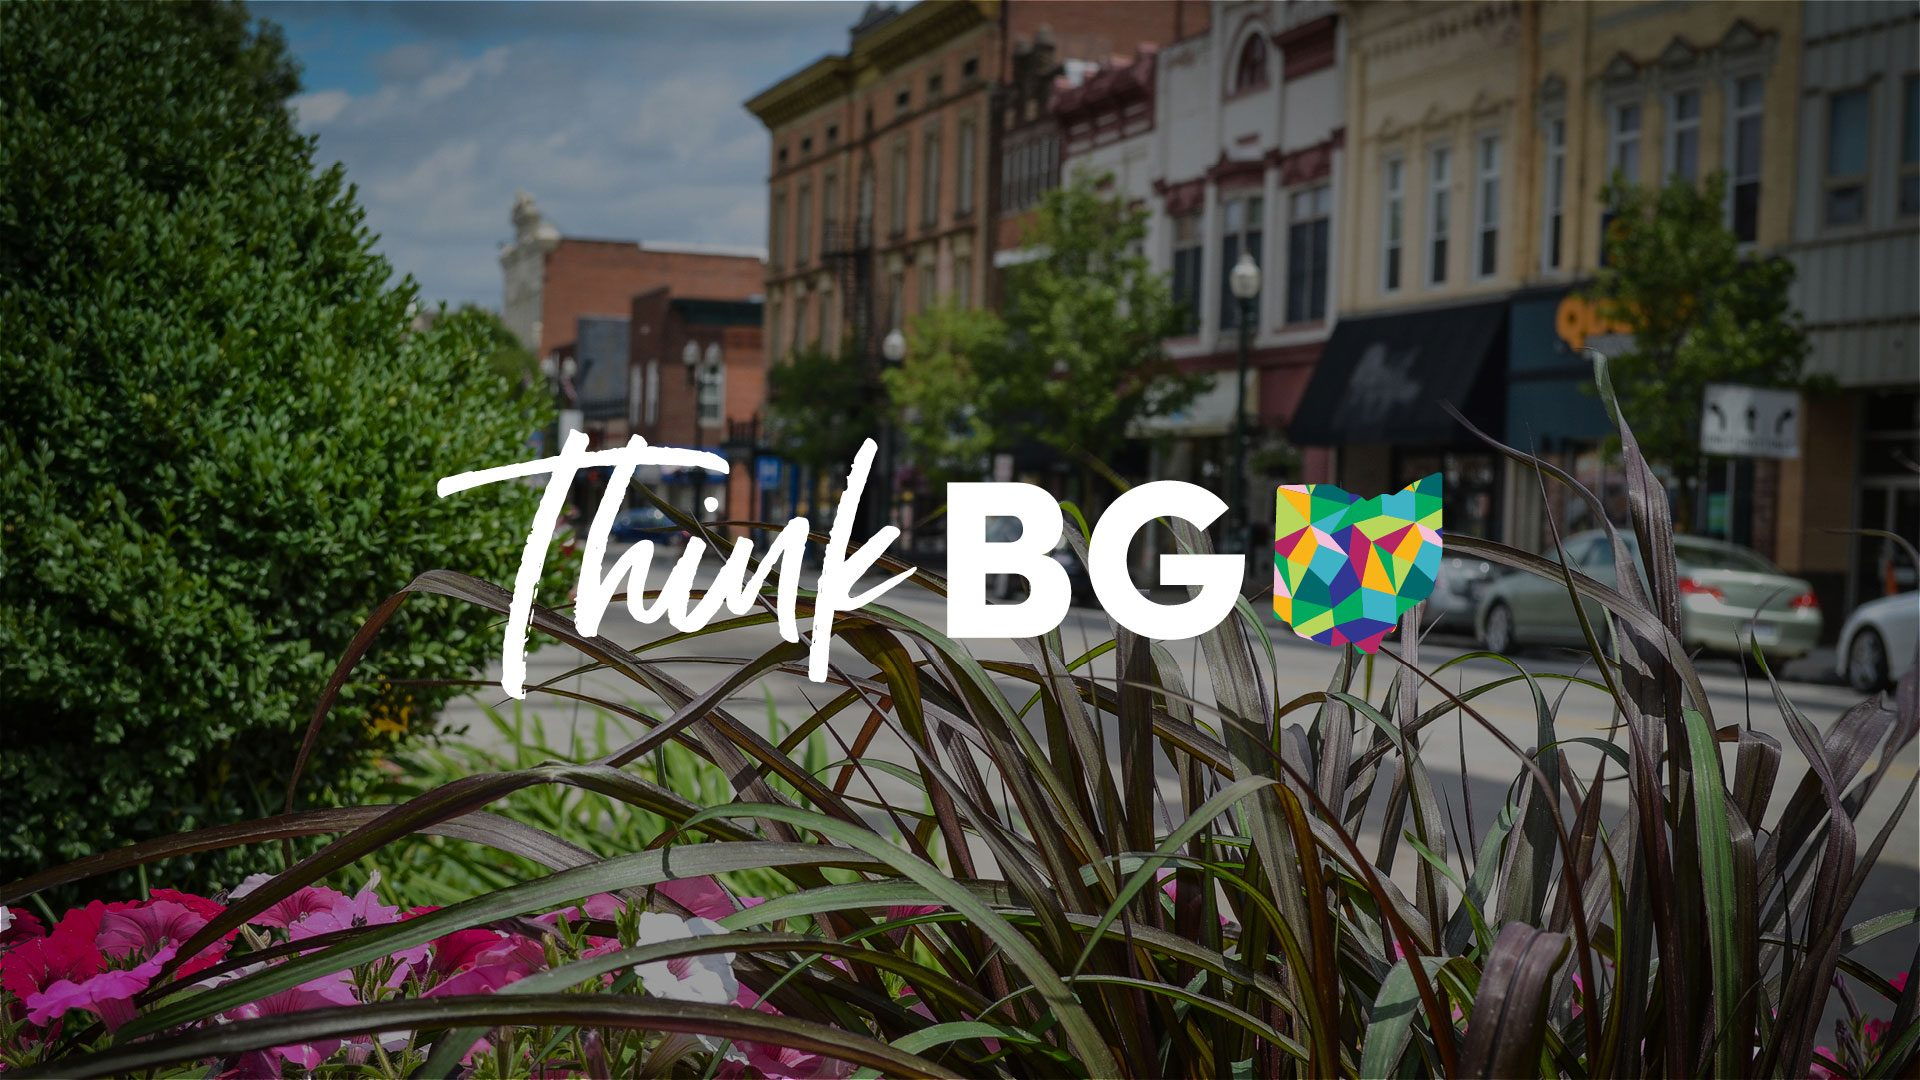 Think BG Ohio